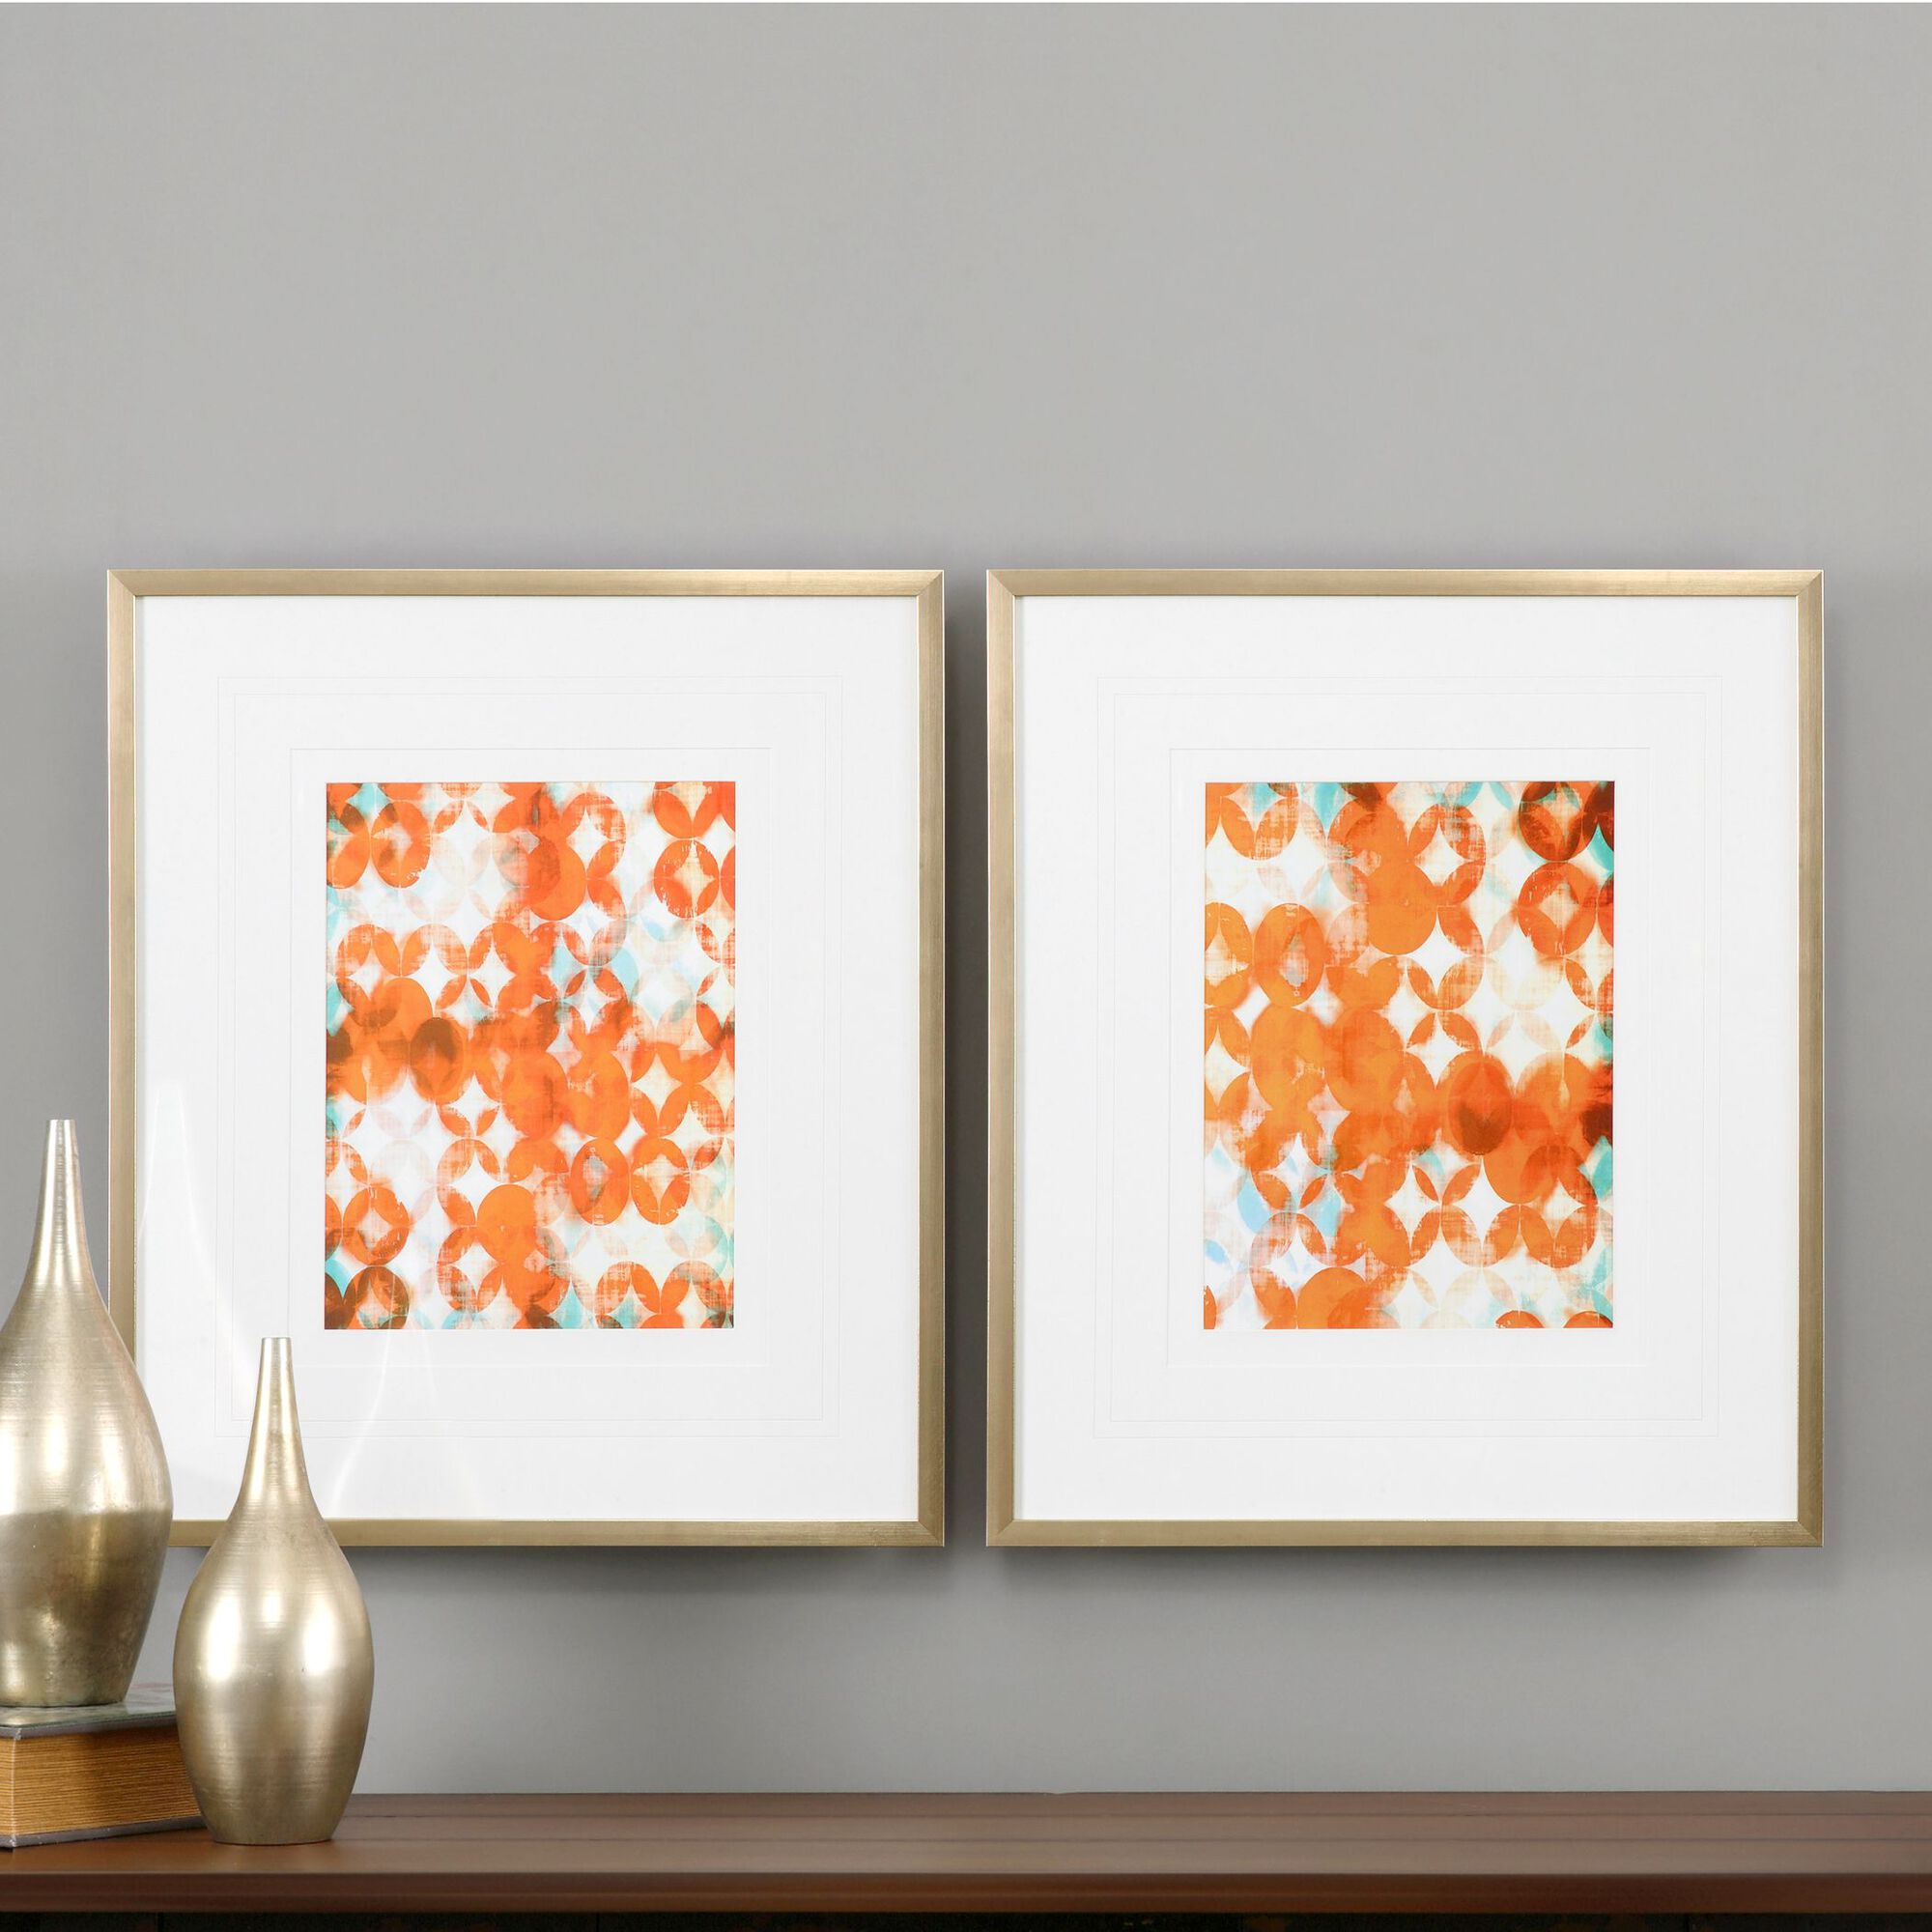 Two Piece Framed Abstract Printed Wall Art Set In Tealorange